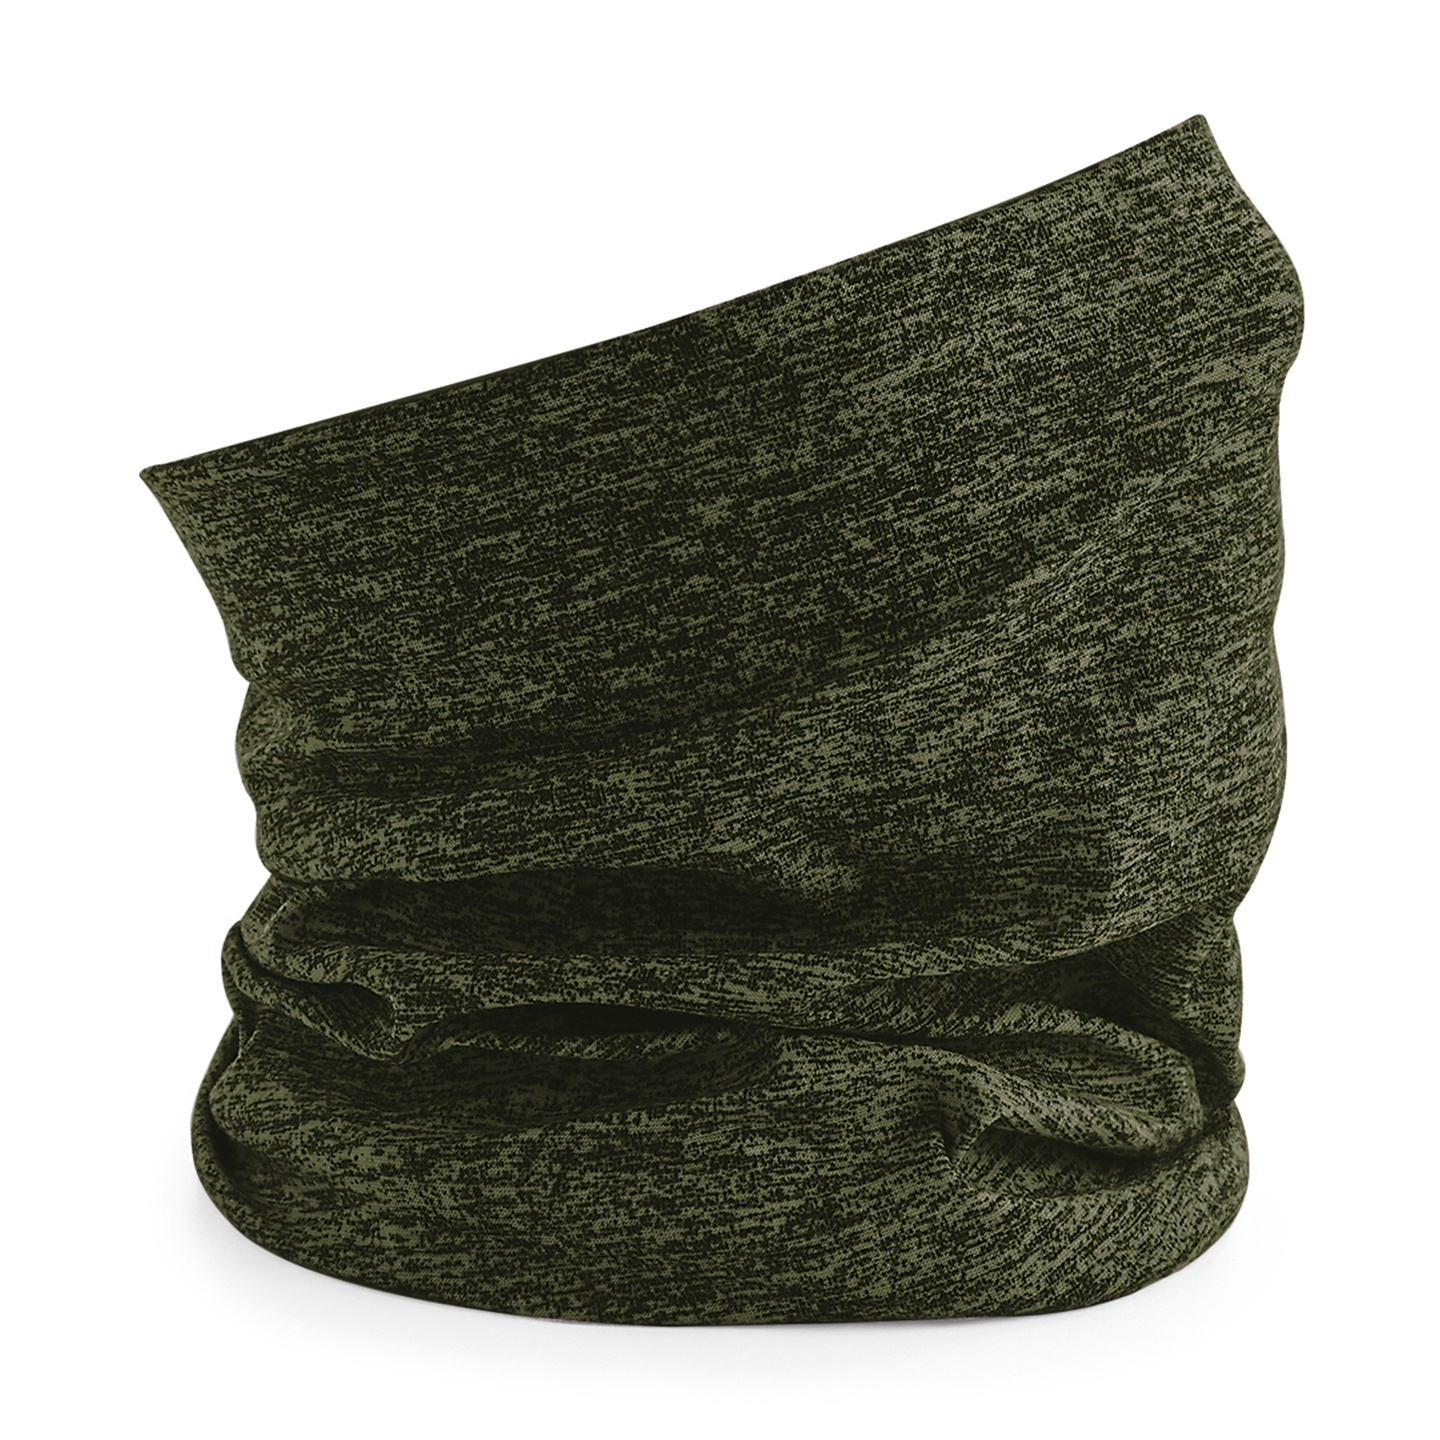 Beechfield Unisex Adult Morf Spacer Marl Neck Warmer (One Size) (Olive)